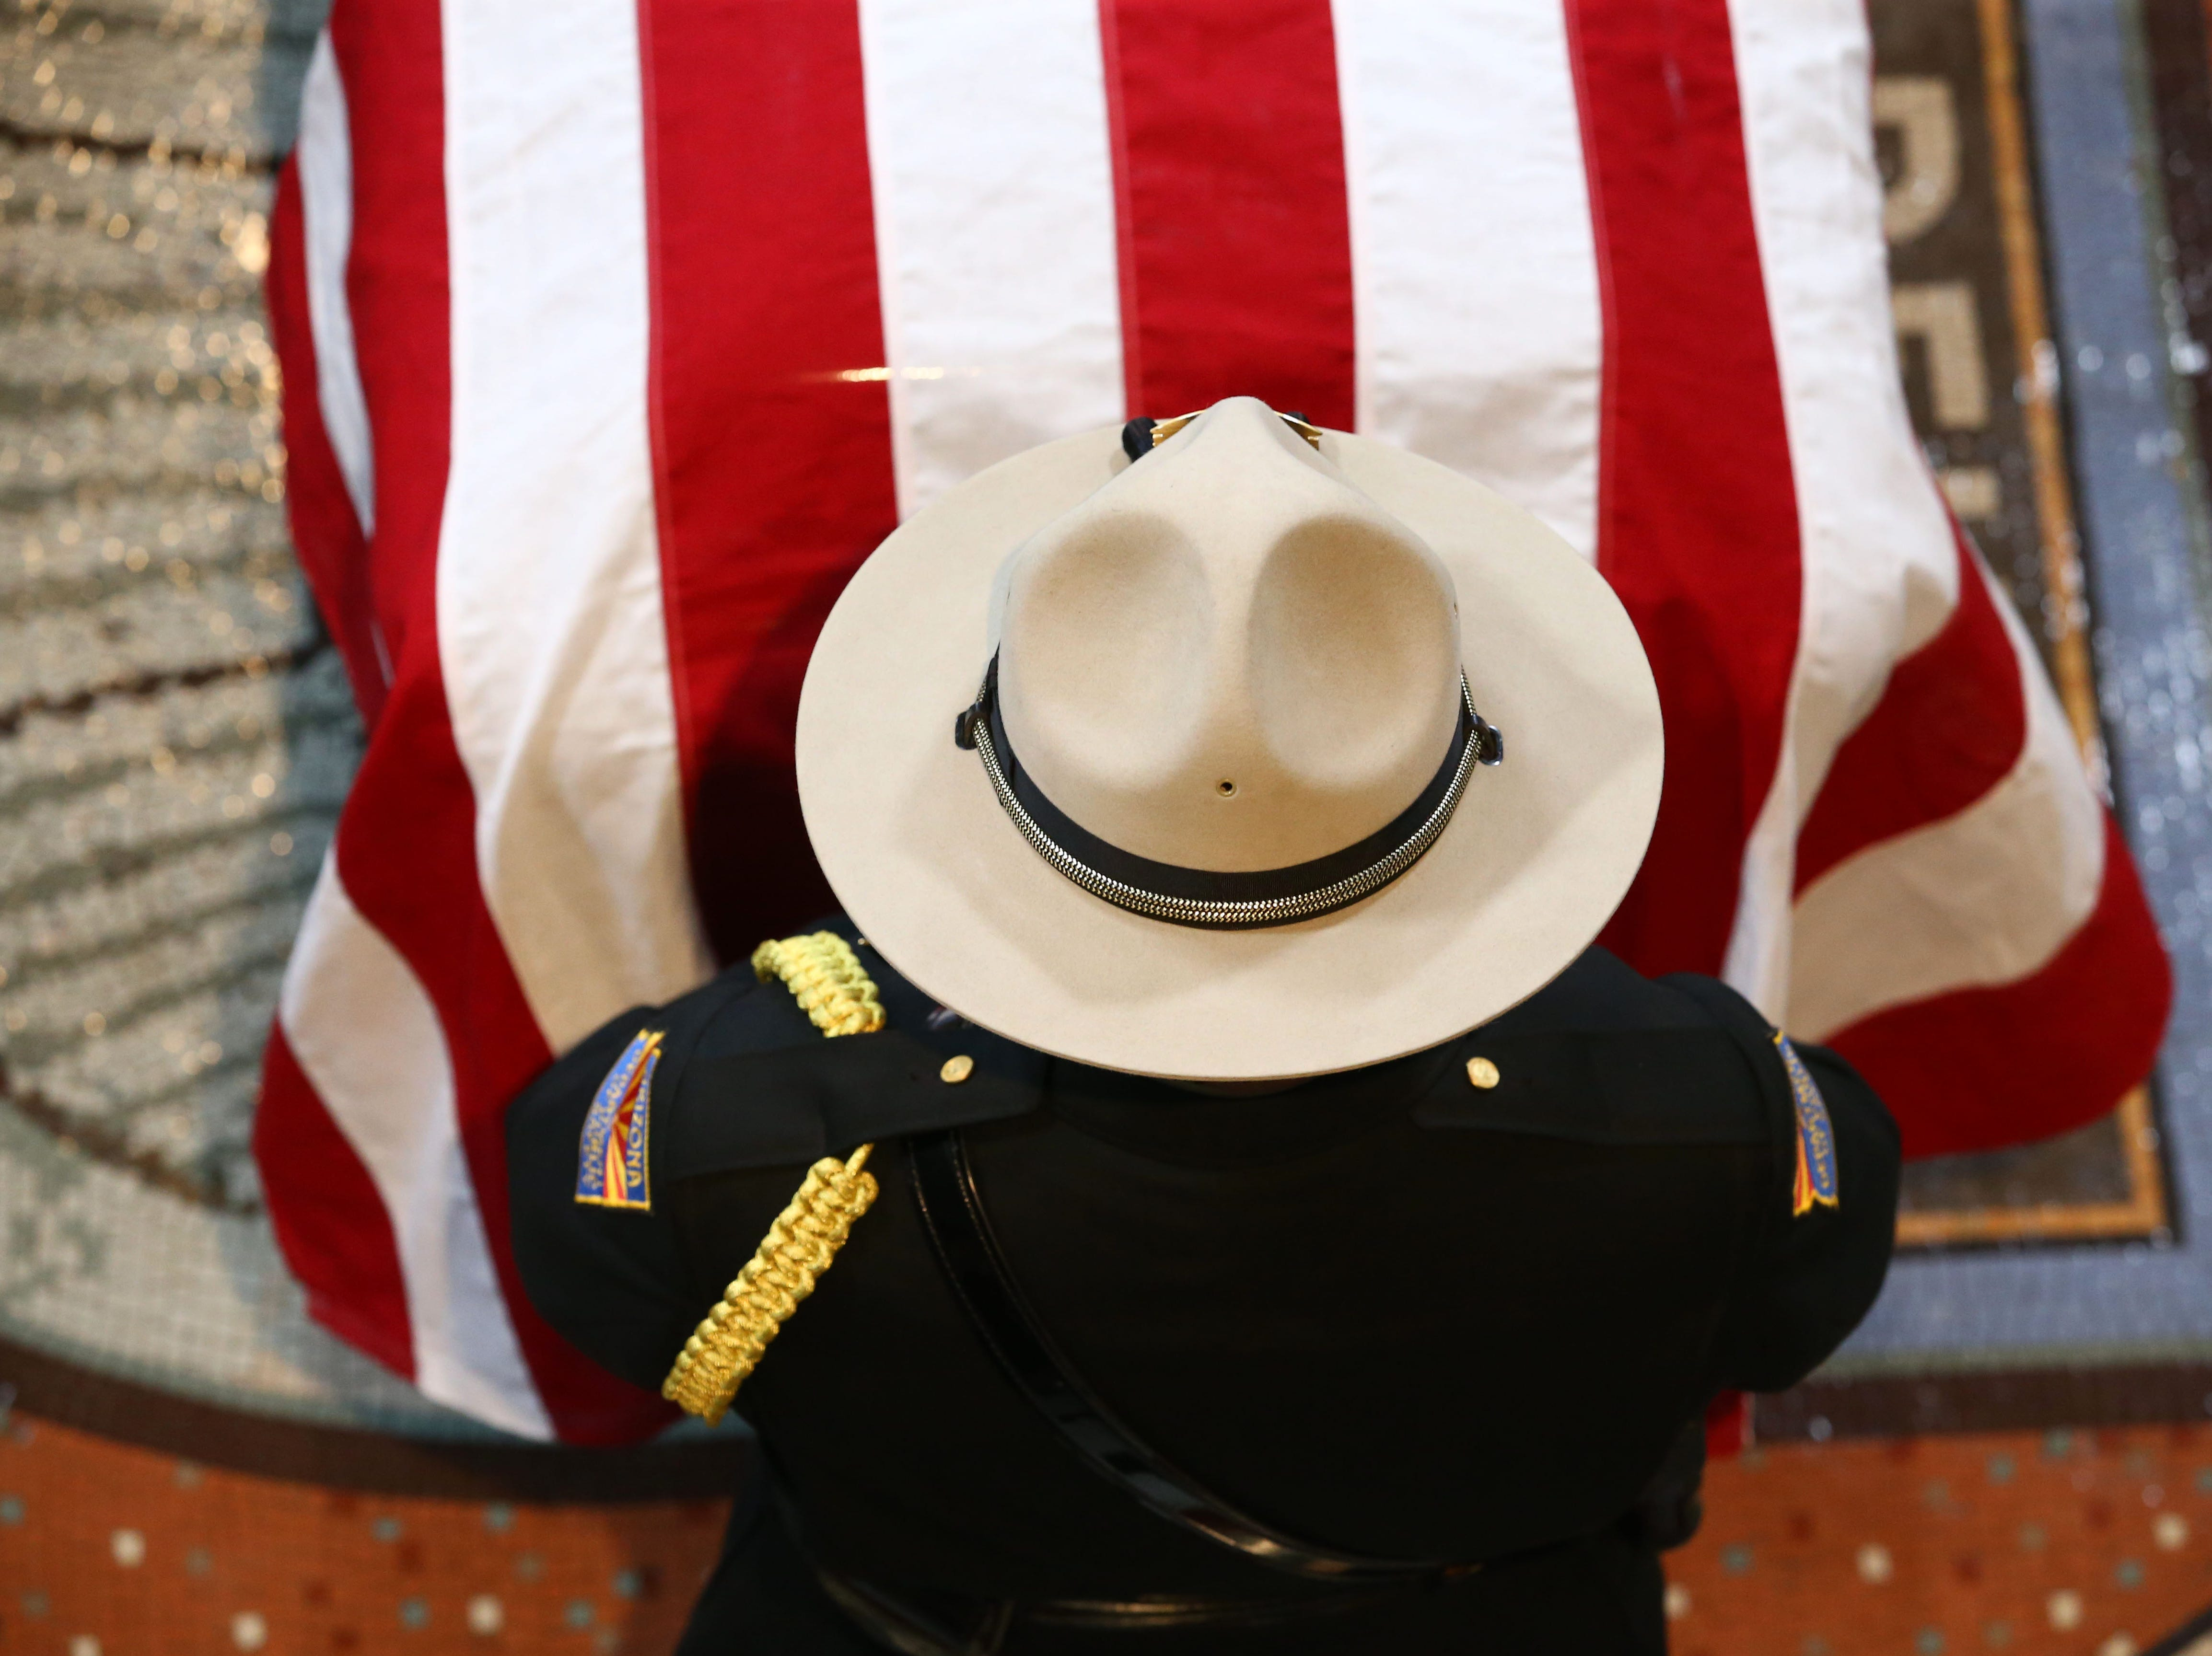 U.S. Senator John McCain lies in state in the Rotunda with an Arizona National Guard of Honor in attendance following his memorial service at the Arizona State Capitol on Aug. 29, 2018, in Phoenix, Ariz.